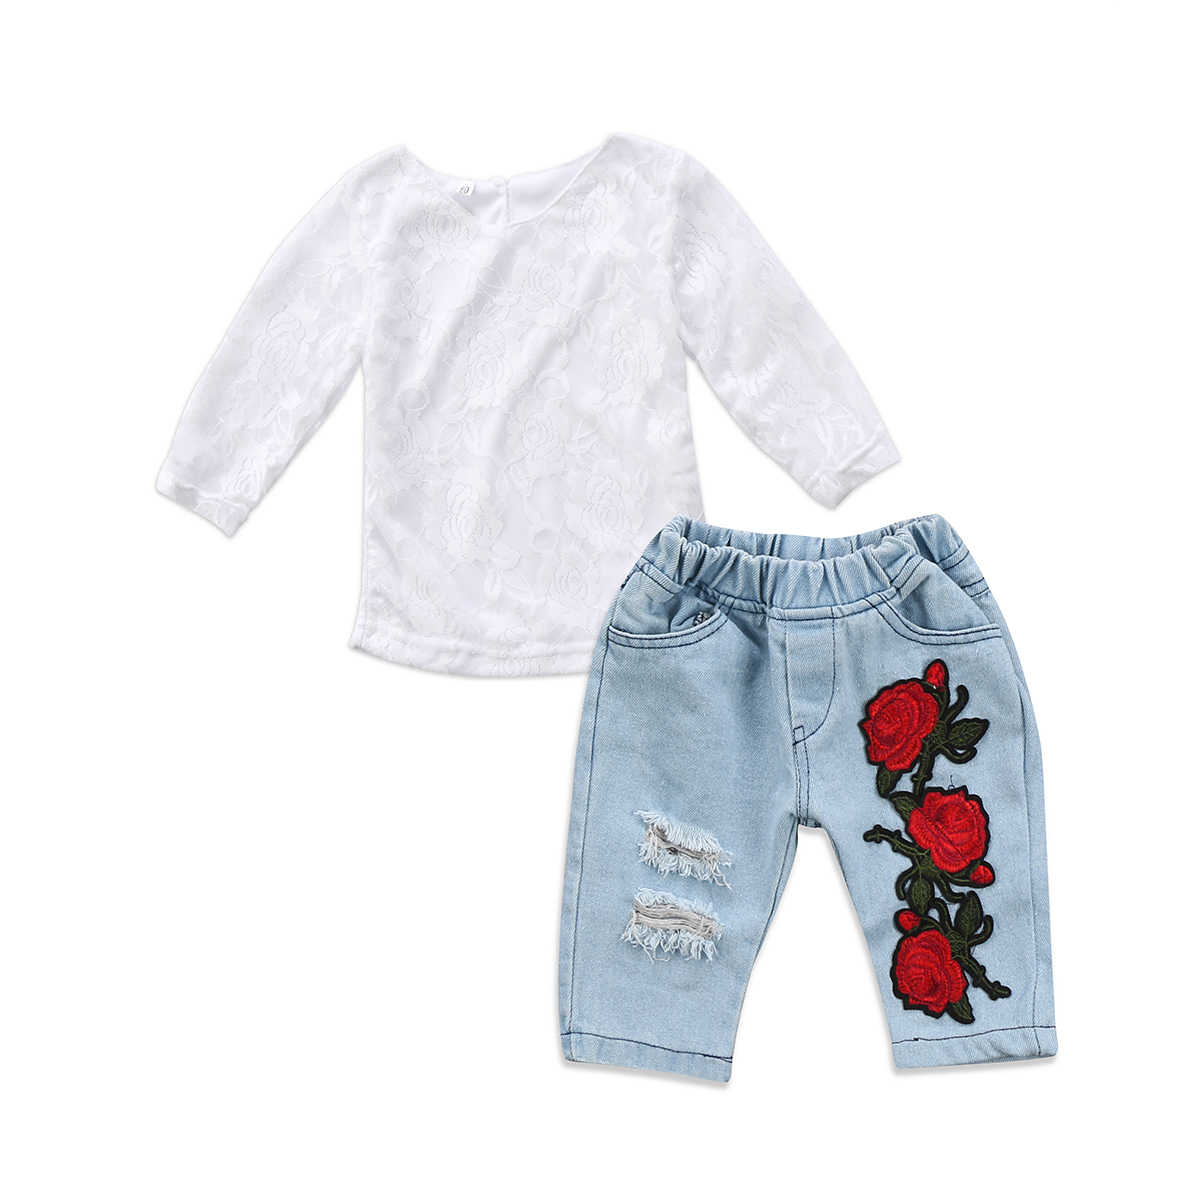 80c97c6595a3 Detail Feedback Questions about pudcoco autumn kid Girl white Lace ...